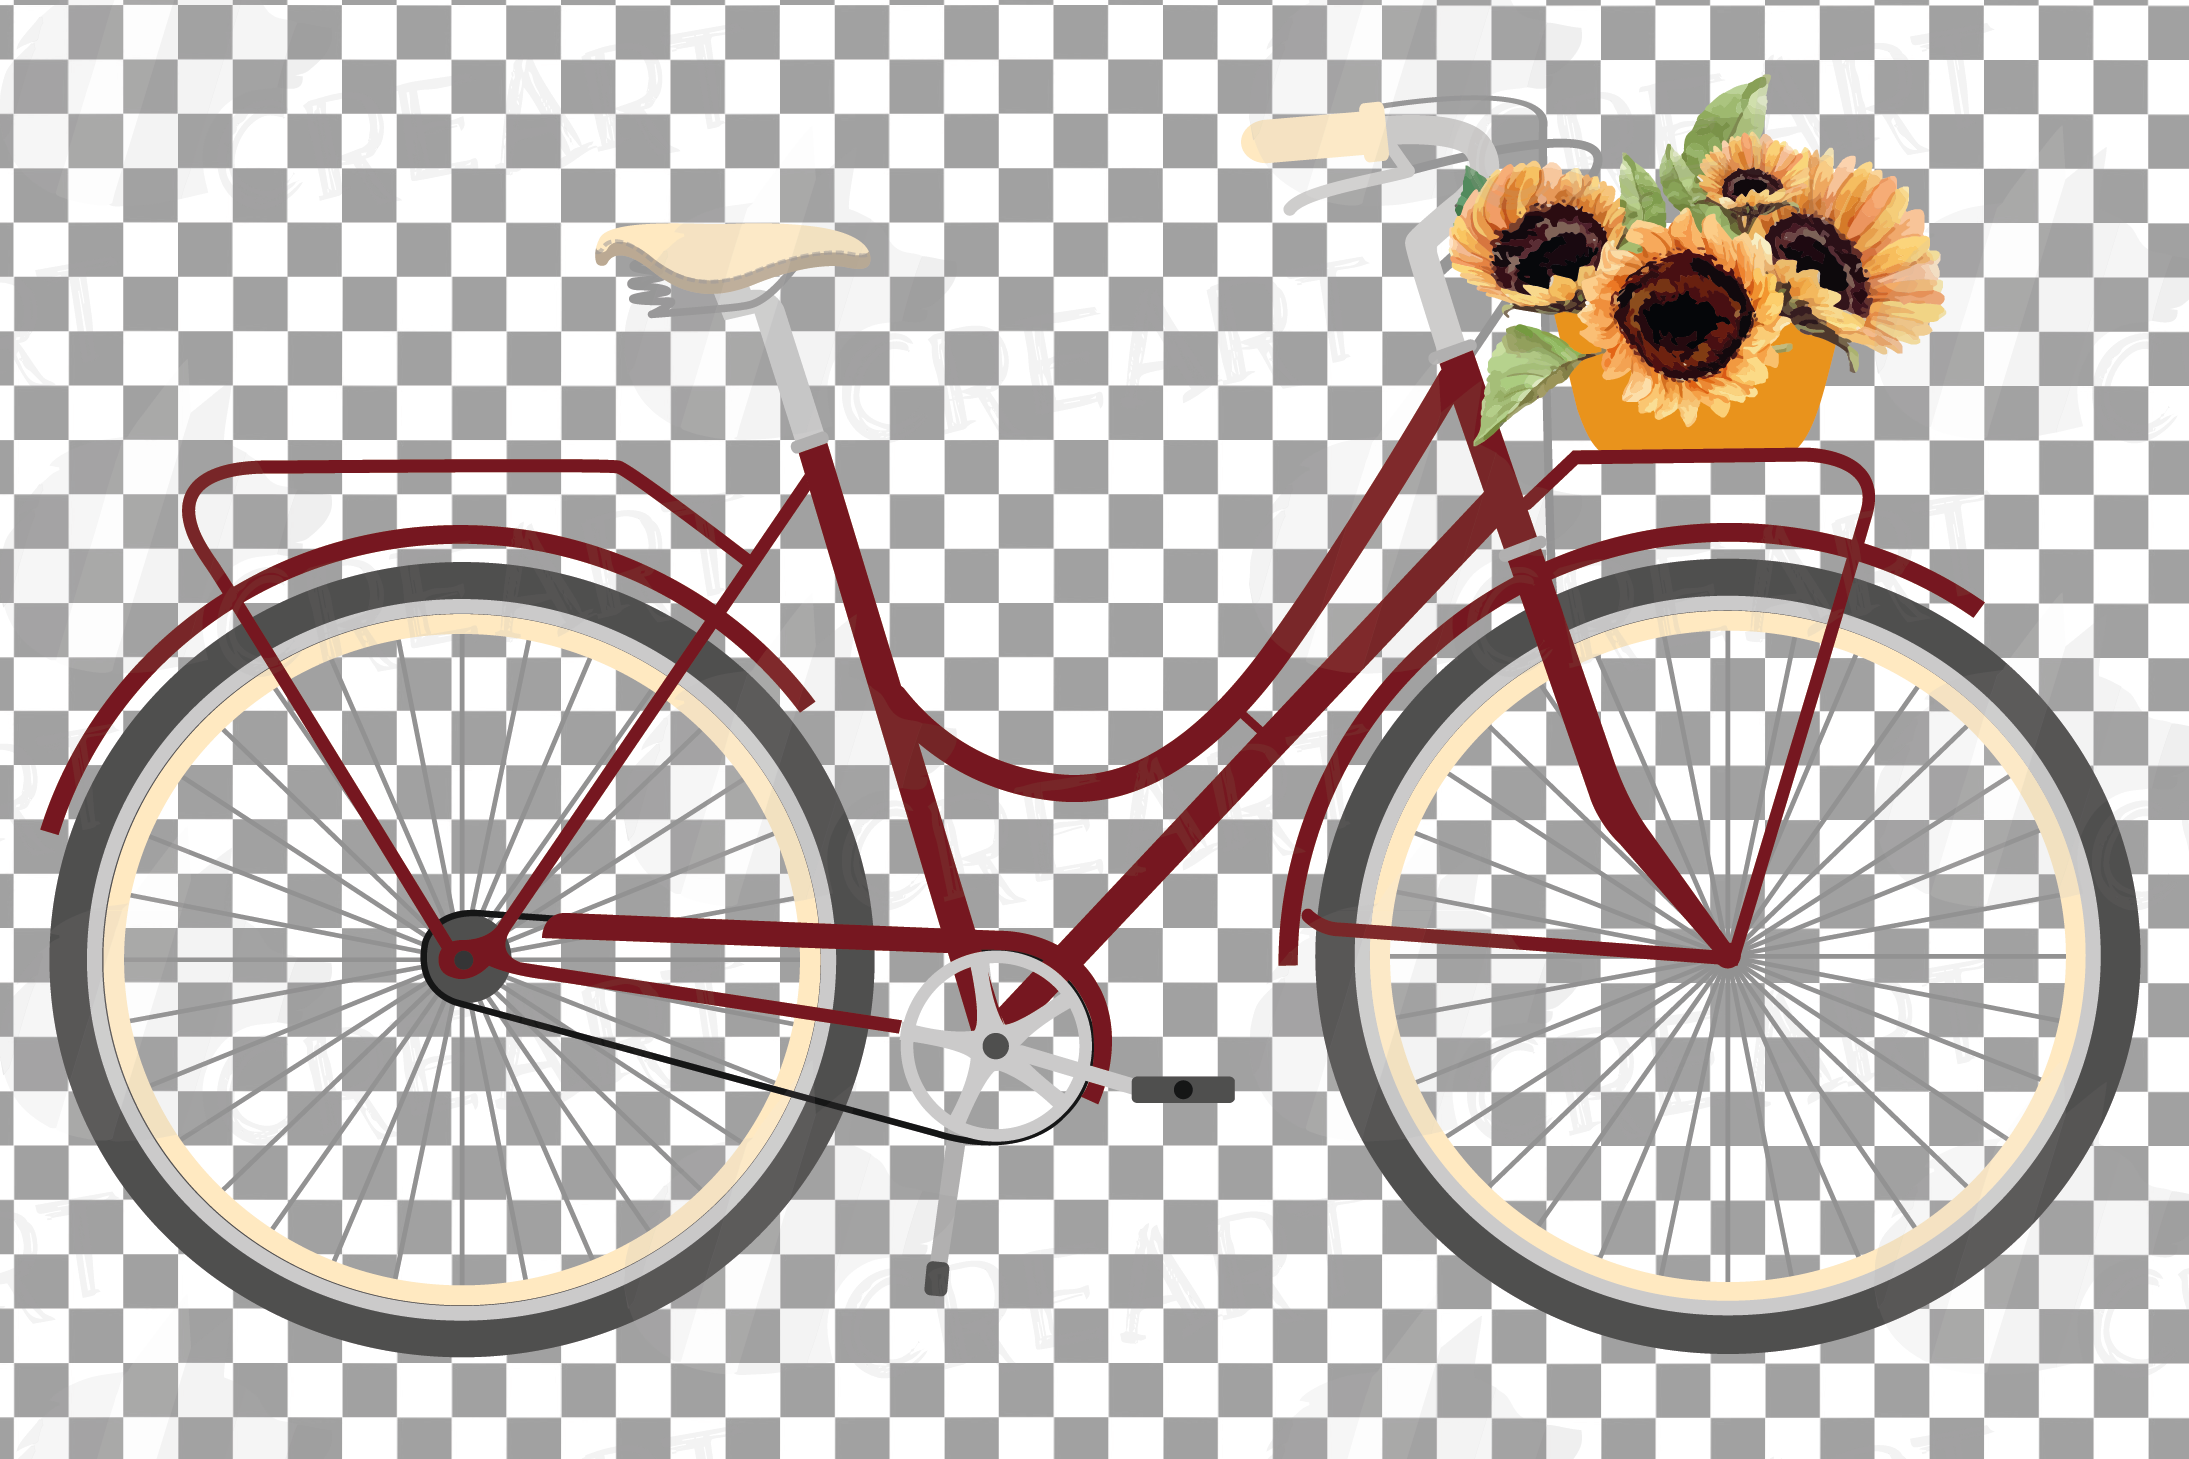 Sunflower bouquets bicycles clip art. Floral bikes decor png example image 6